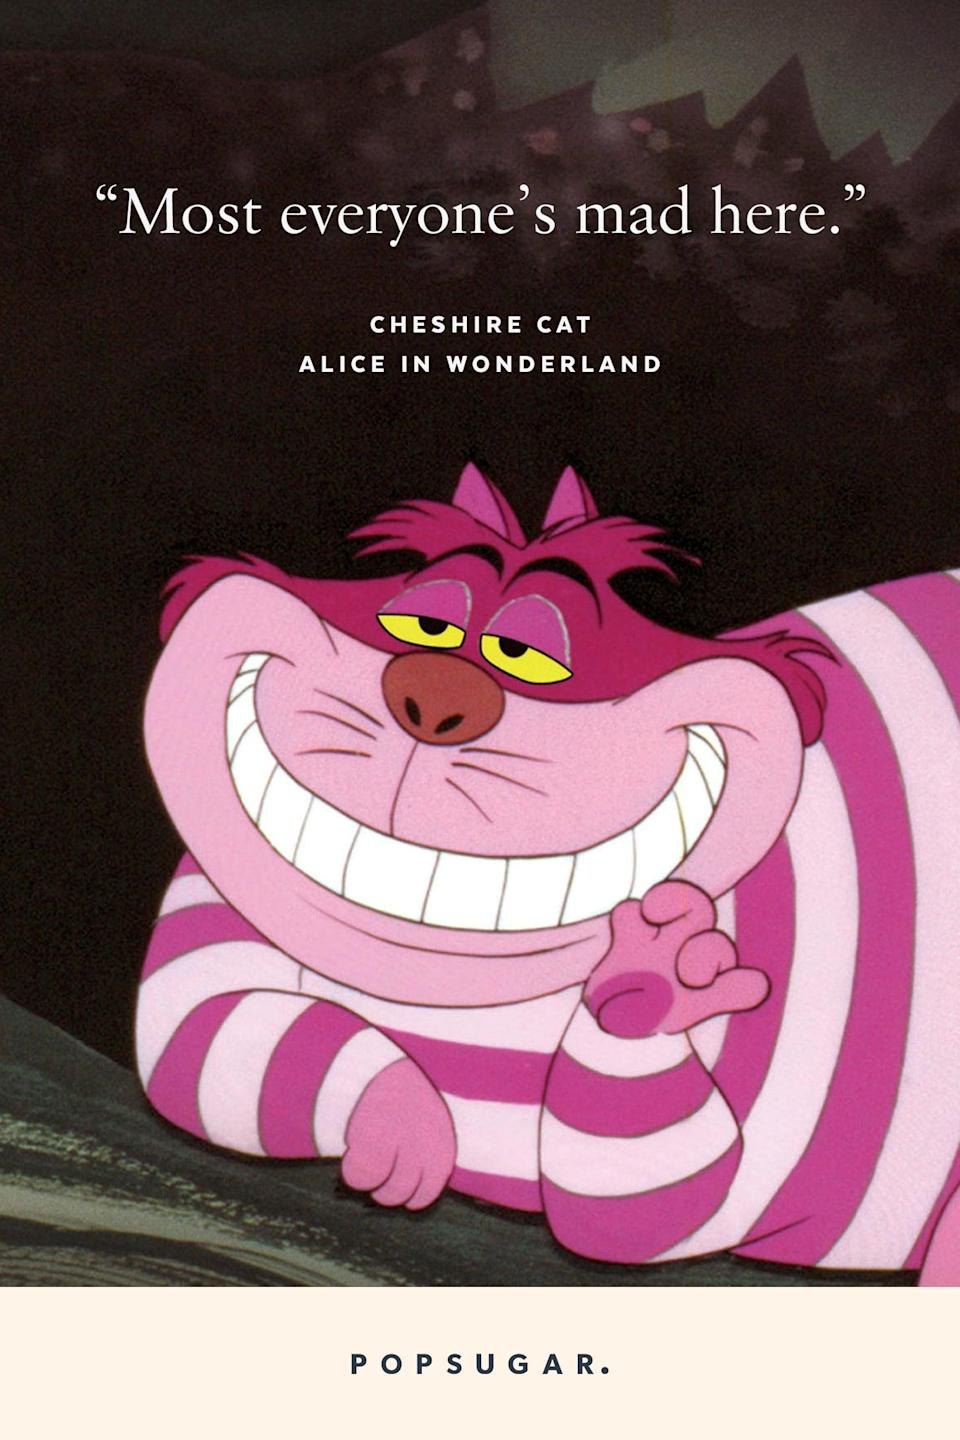 "<p>""Most everyone's mad here."" - Cheshire Cat, <b>Alice in Wonderland</b> </p>"